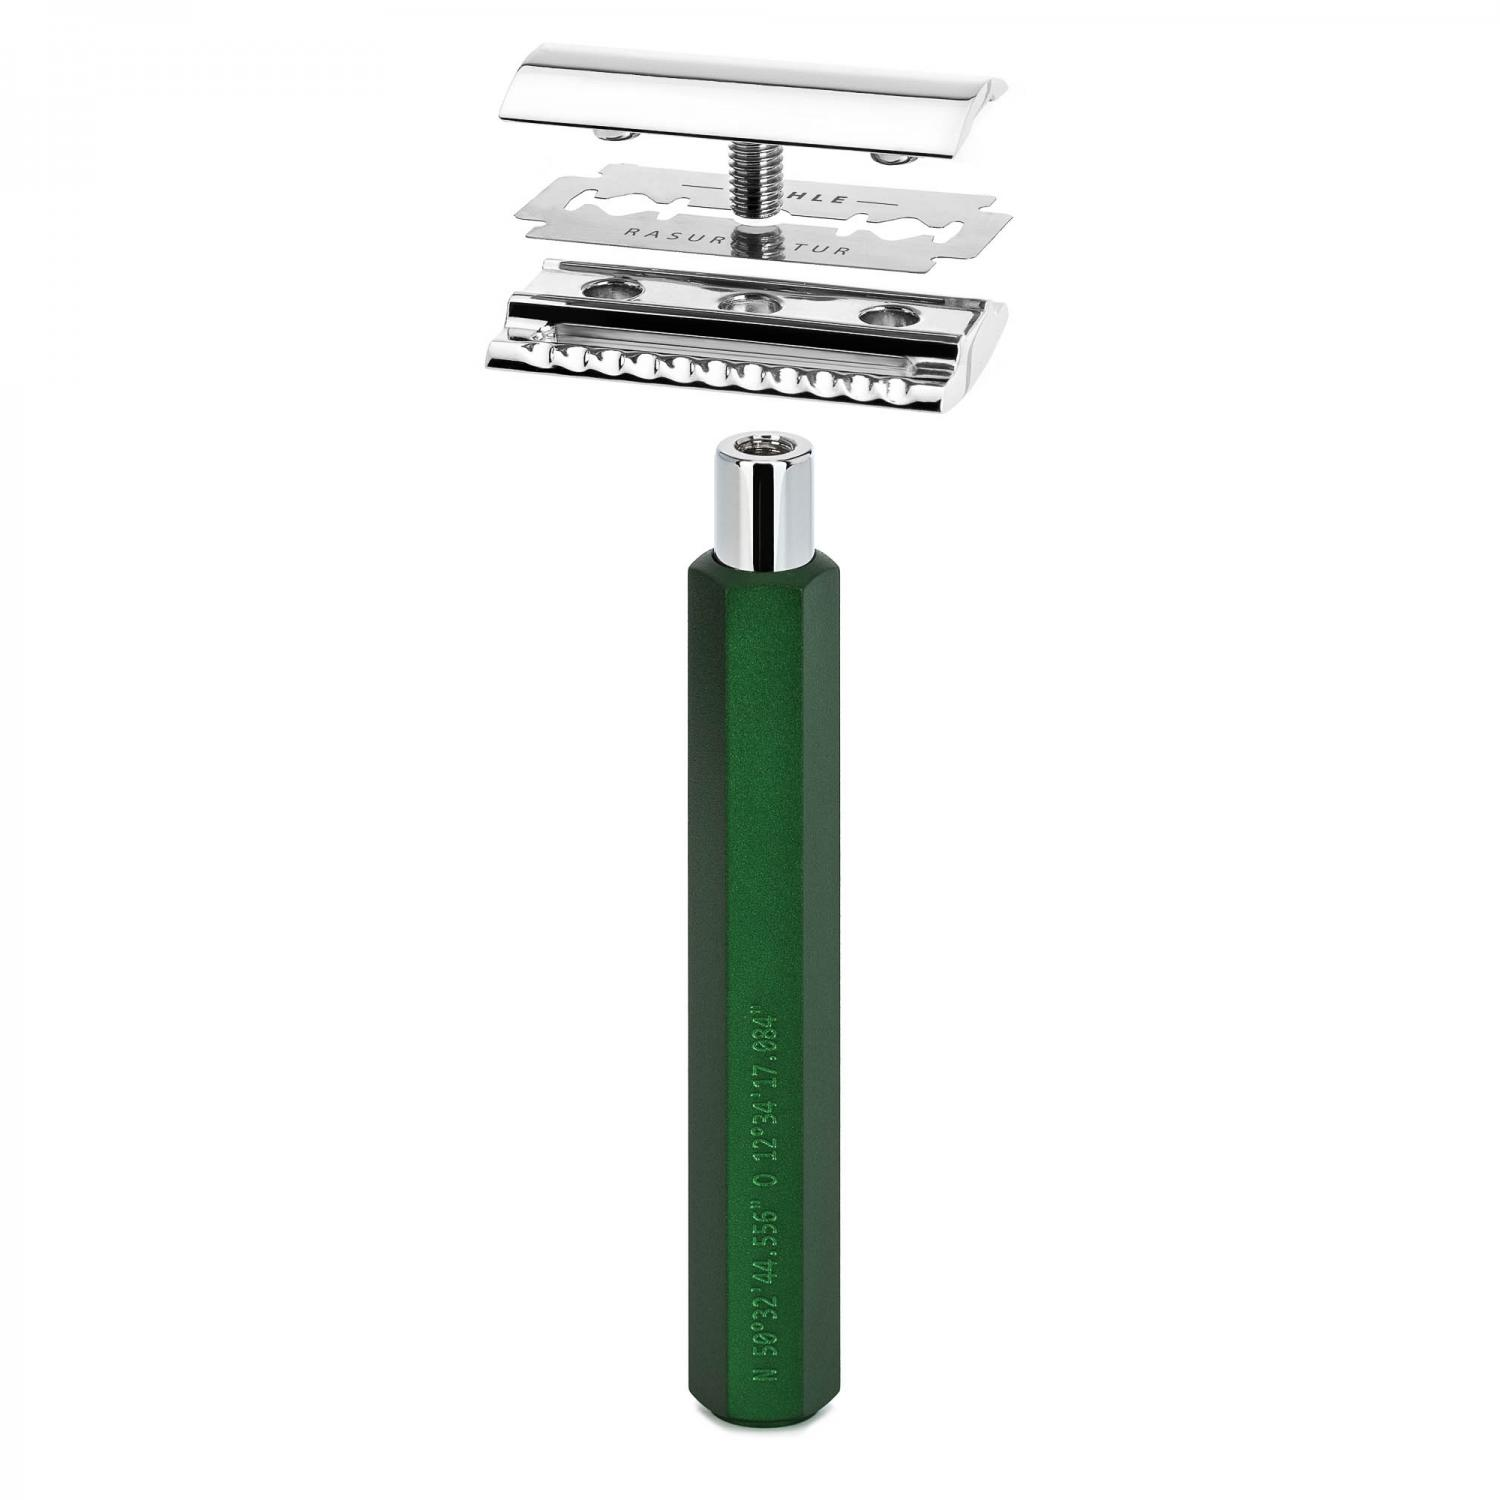 MUHLE HEXAGON Series Forest Safety razor